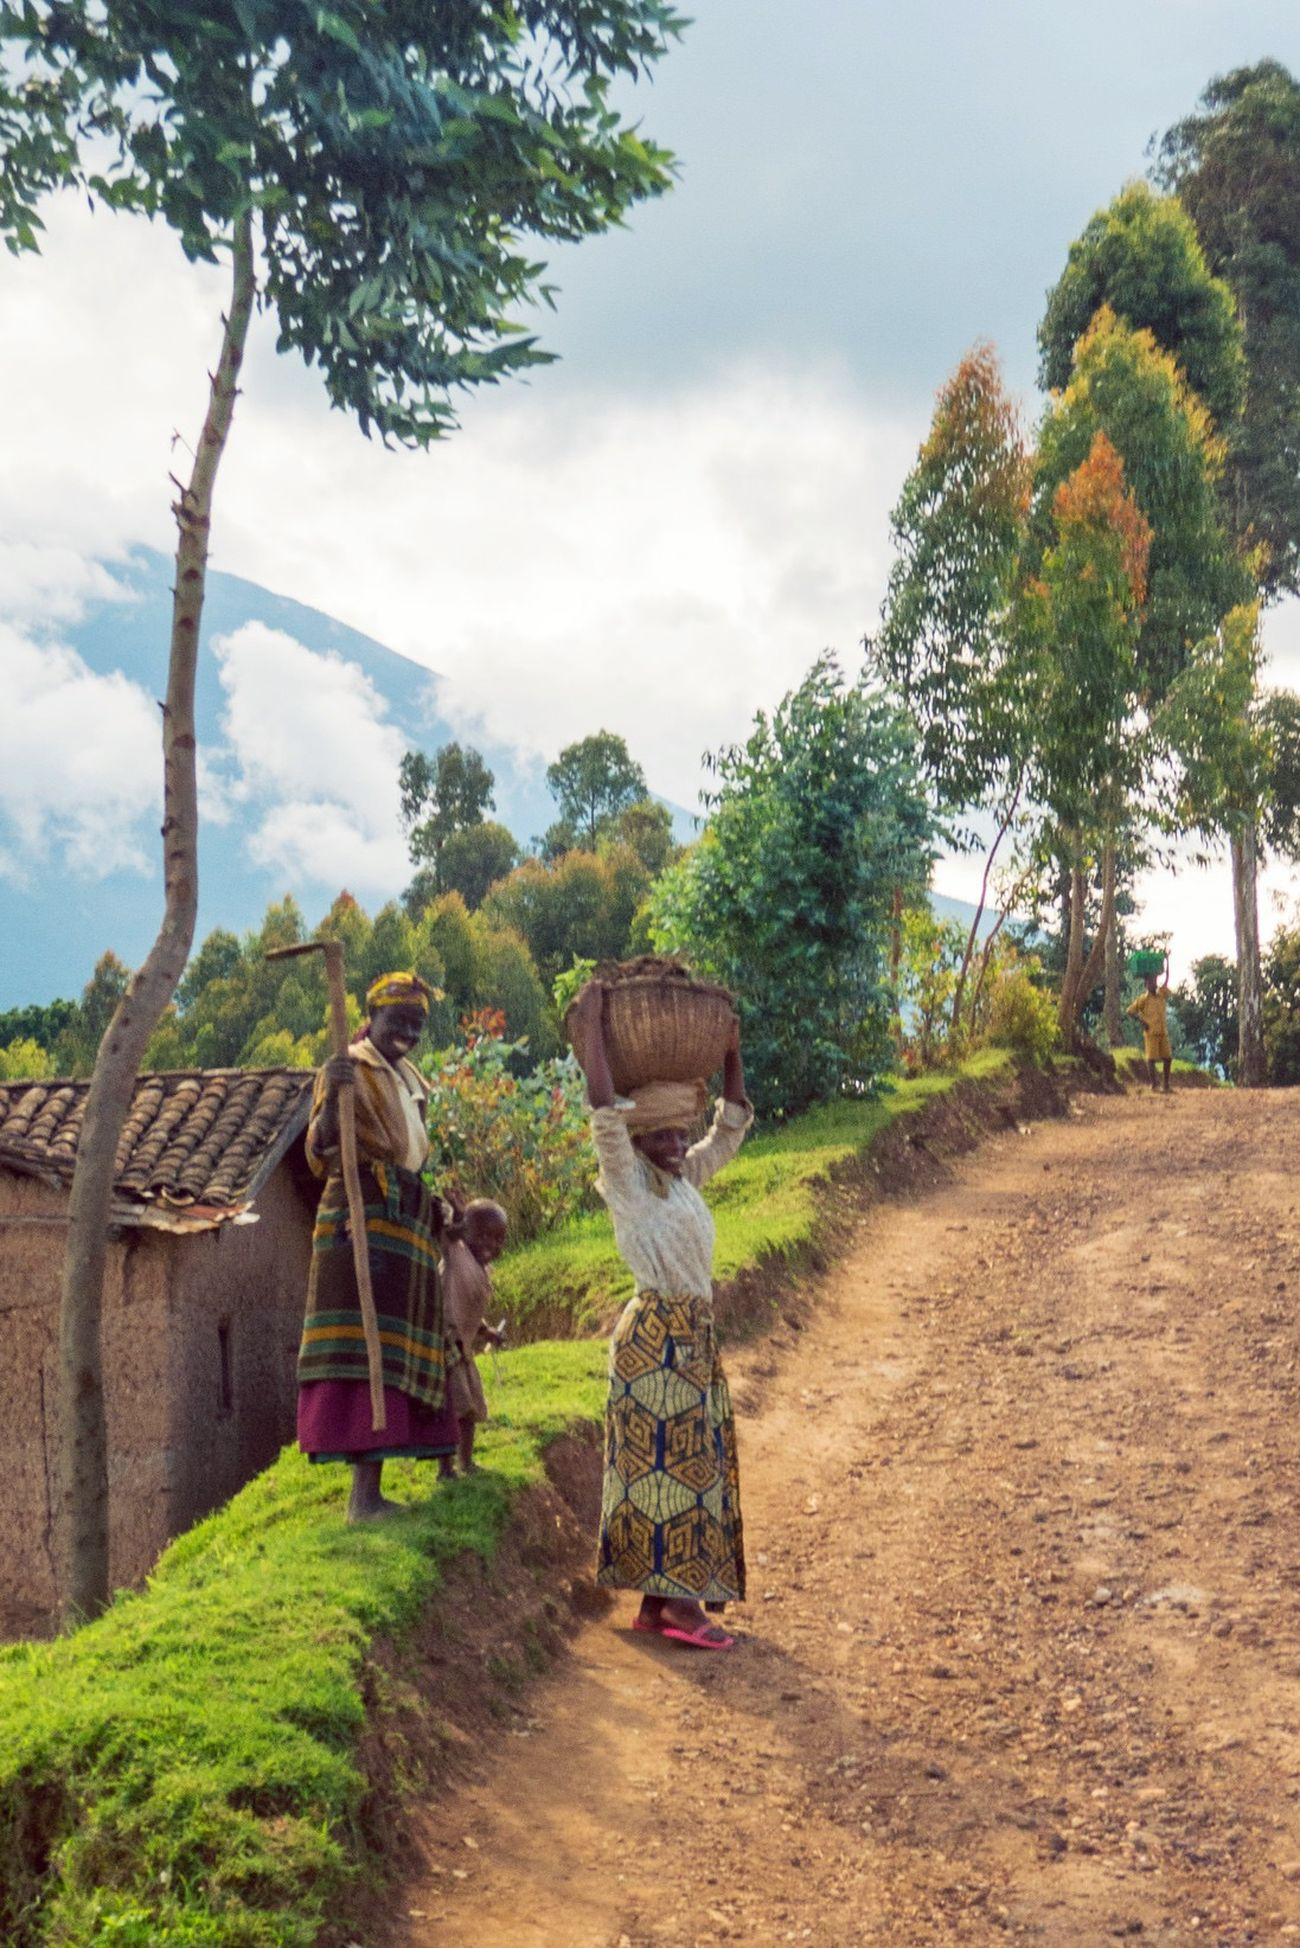 Women near the twin lakes in Ruhengeri (Musanze) Rwanda head home with full baskets in the late afternoon. RePicture Travel Streetphotography Streetphoto_color Travel Photography Africa Peoplephotography Happy People Rural Scenes Cheese!